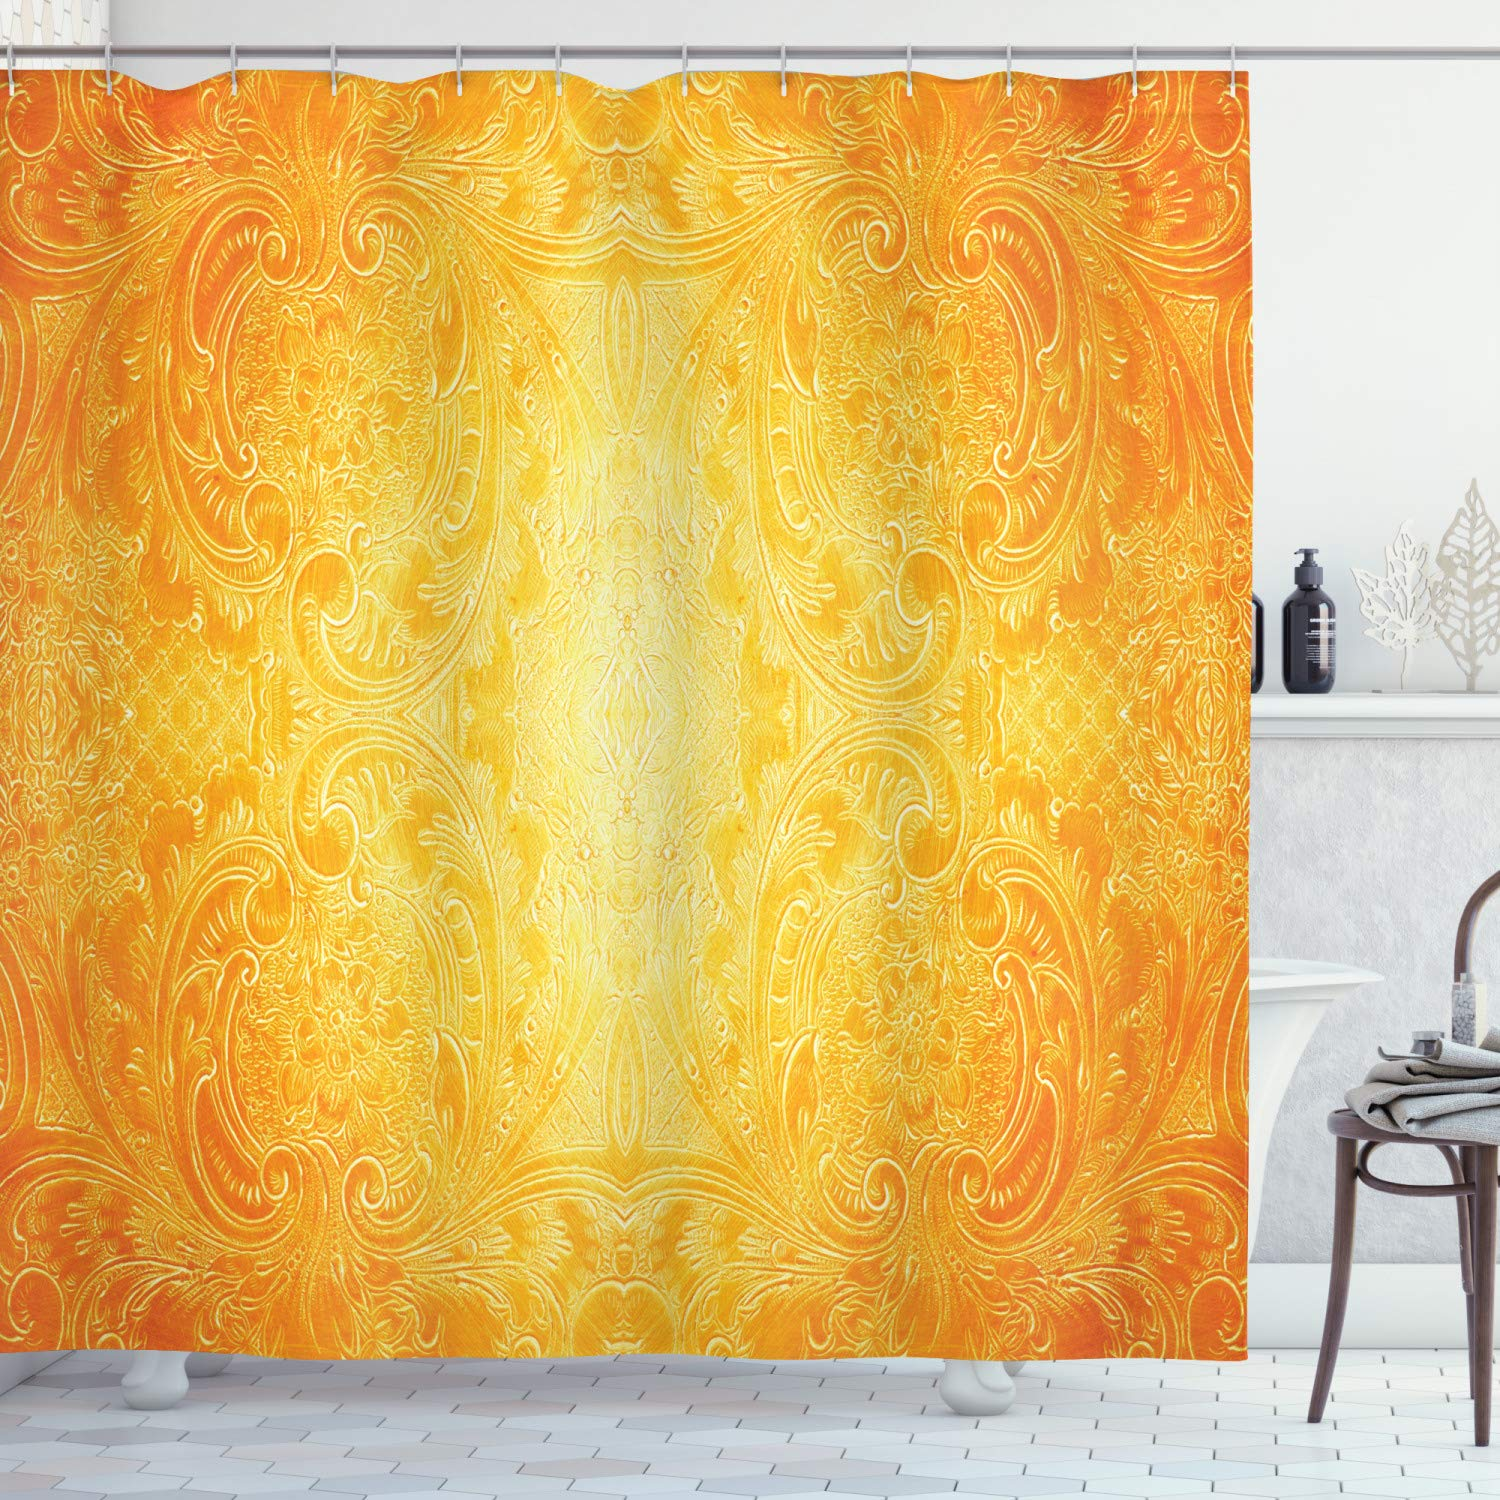 """Ambesonne Yellow Shower Curtain, Victorian Style Antique Pattern with Ornamental Flourish Vintage Design Illustration, Cloth Fabric Bathroom Decor Set with Hooks, 75"""" Long, Marigold"""